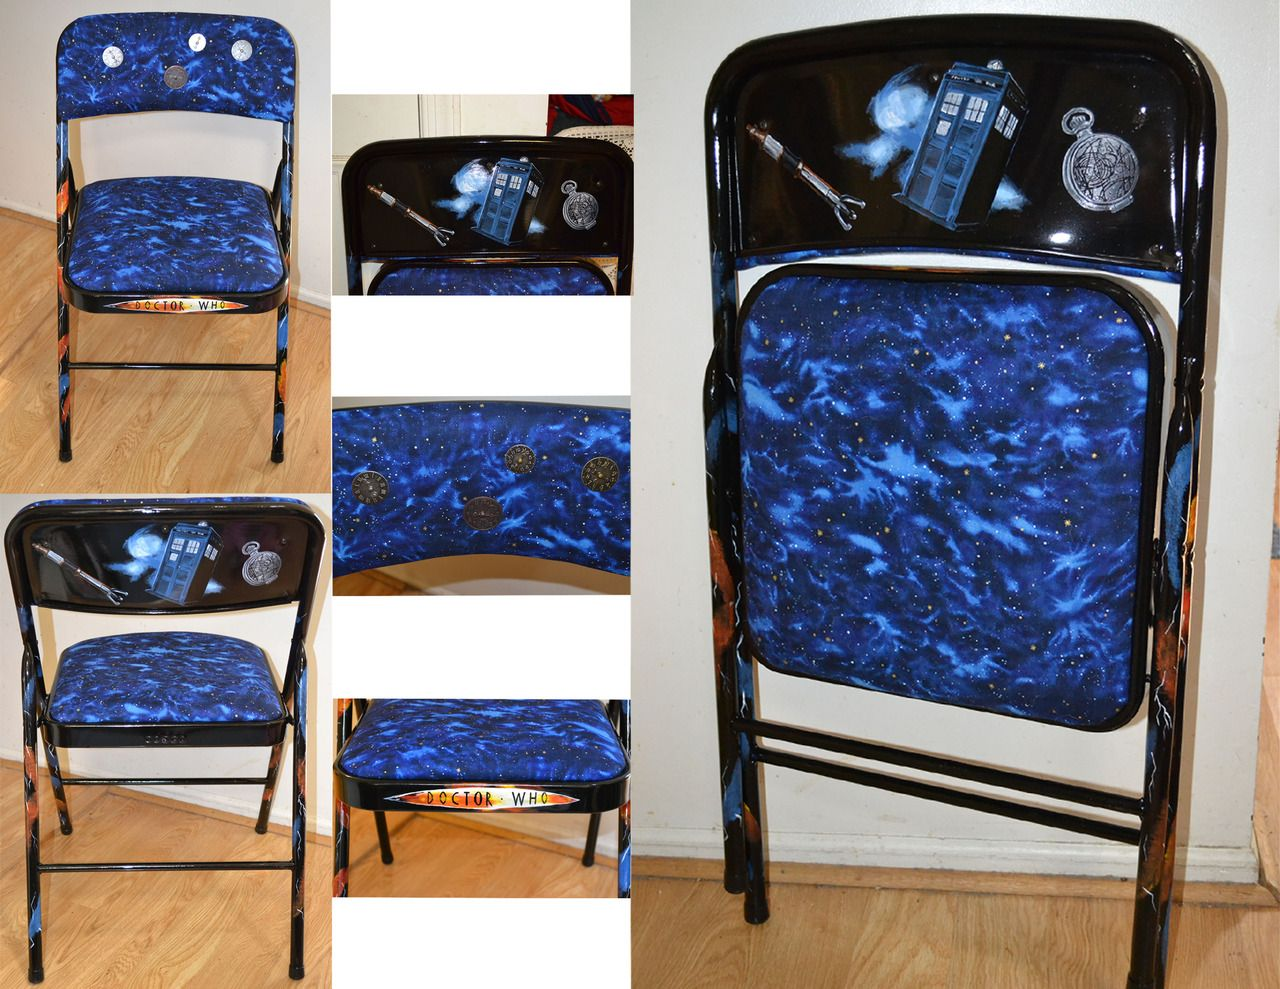 Comfy chairs doctor who - Doctor Who Themed Chair That I Made For My Sons Dorm Room Submitted By